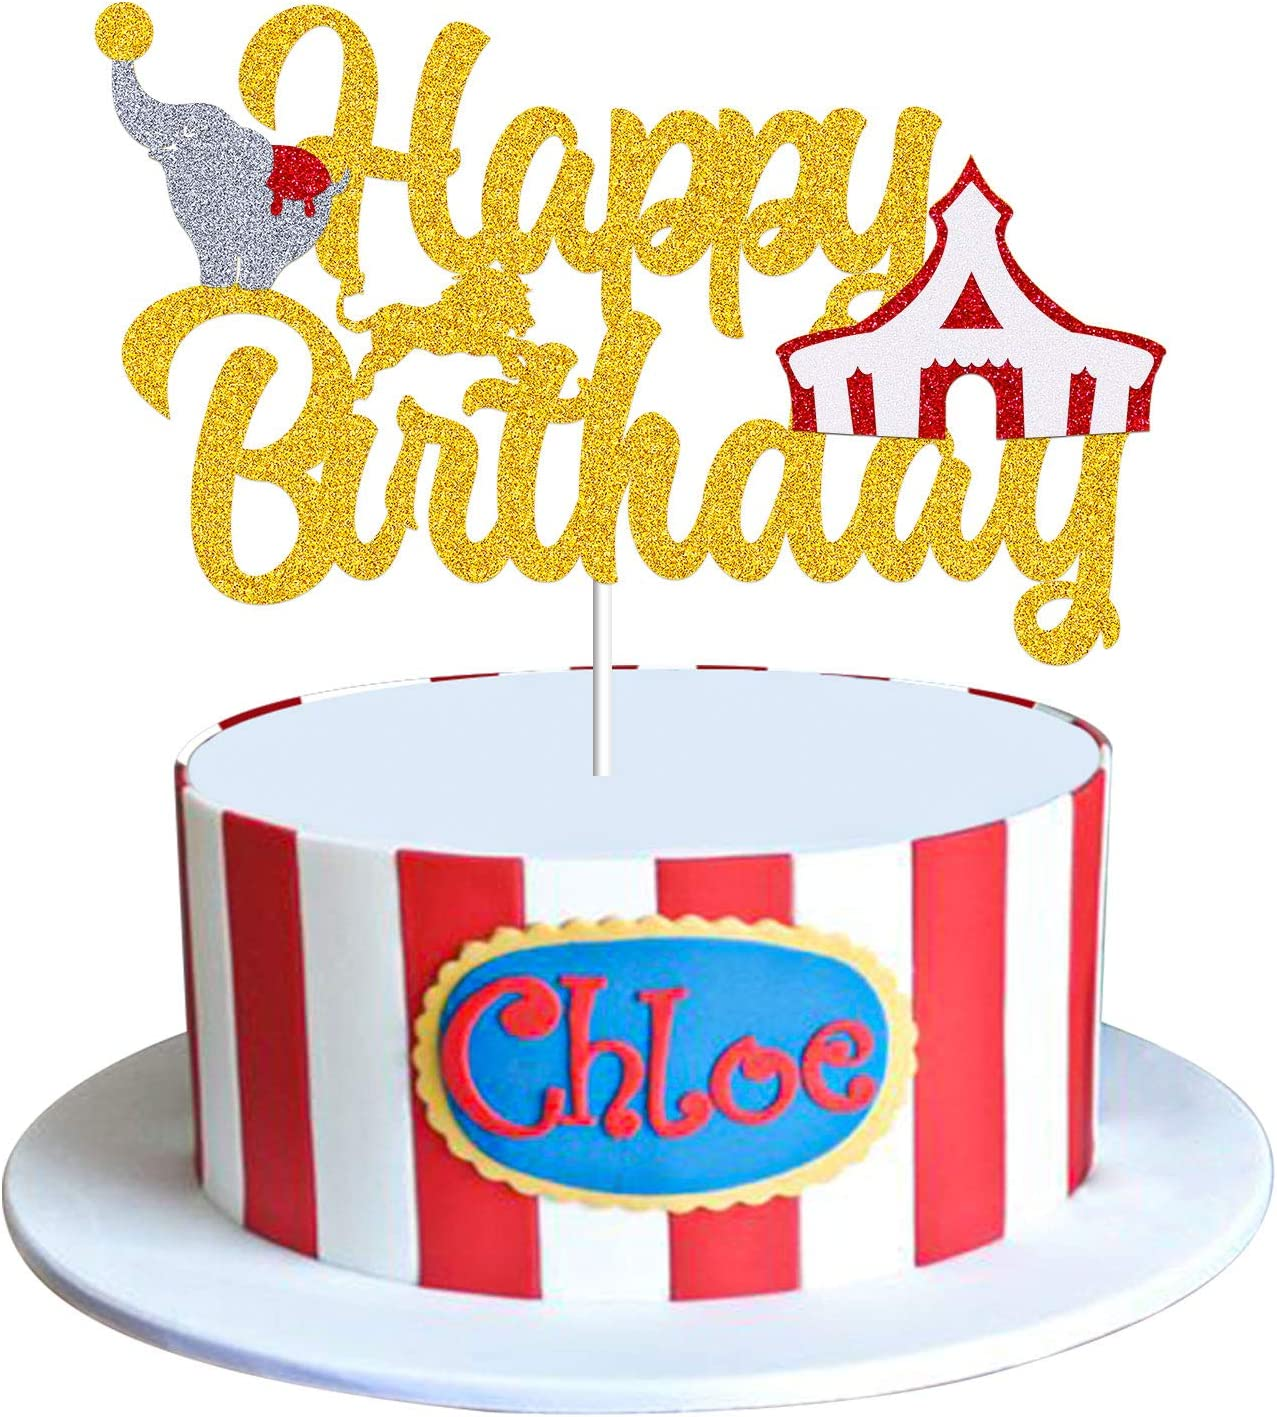 Circus Elephant Cake Topper, Circus Theme Happy Birthday Cake Decorations, Vintage Circus Tent Carnival Themed Gold Glitter Birthday Decor Supplies for Kids Baby Shower 1 st 2 nd Birthday Parties